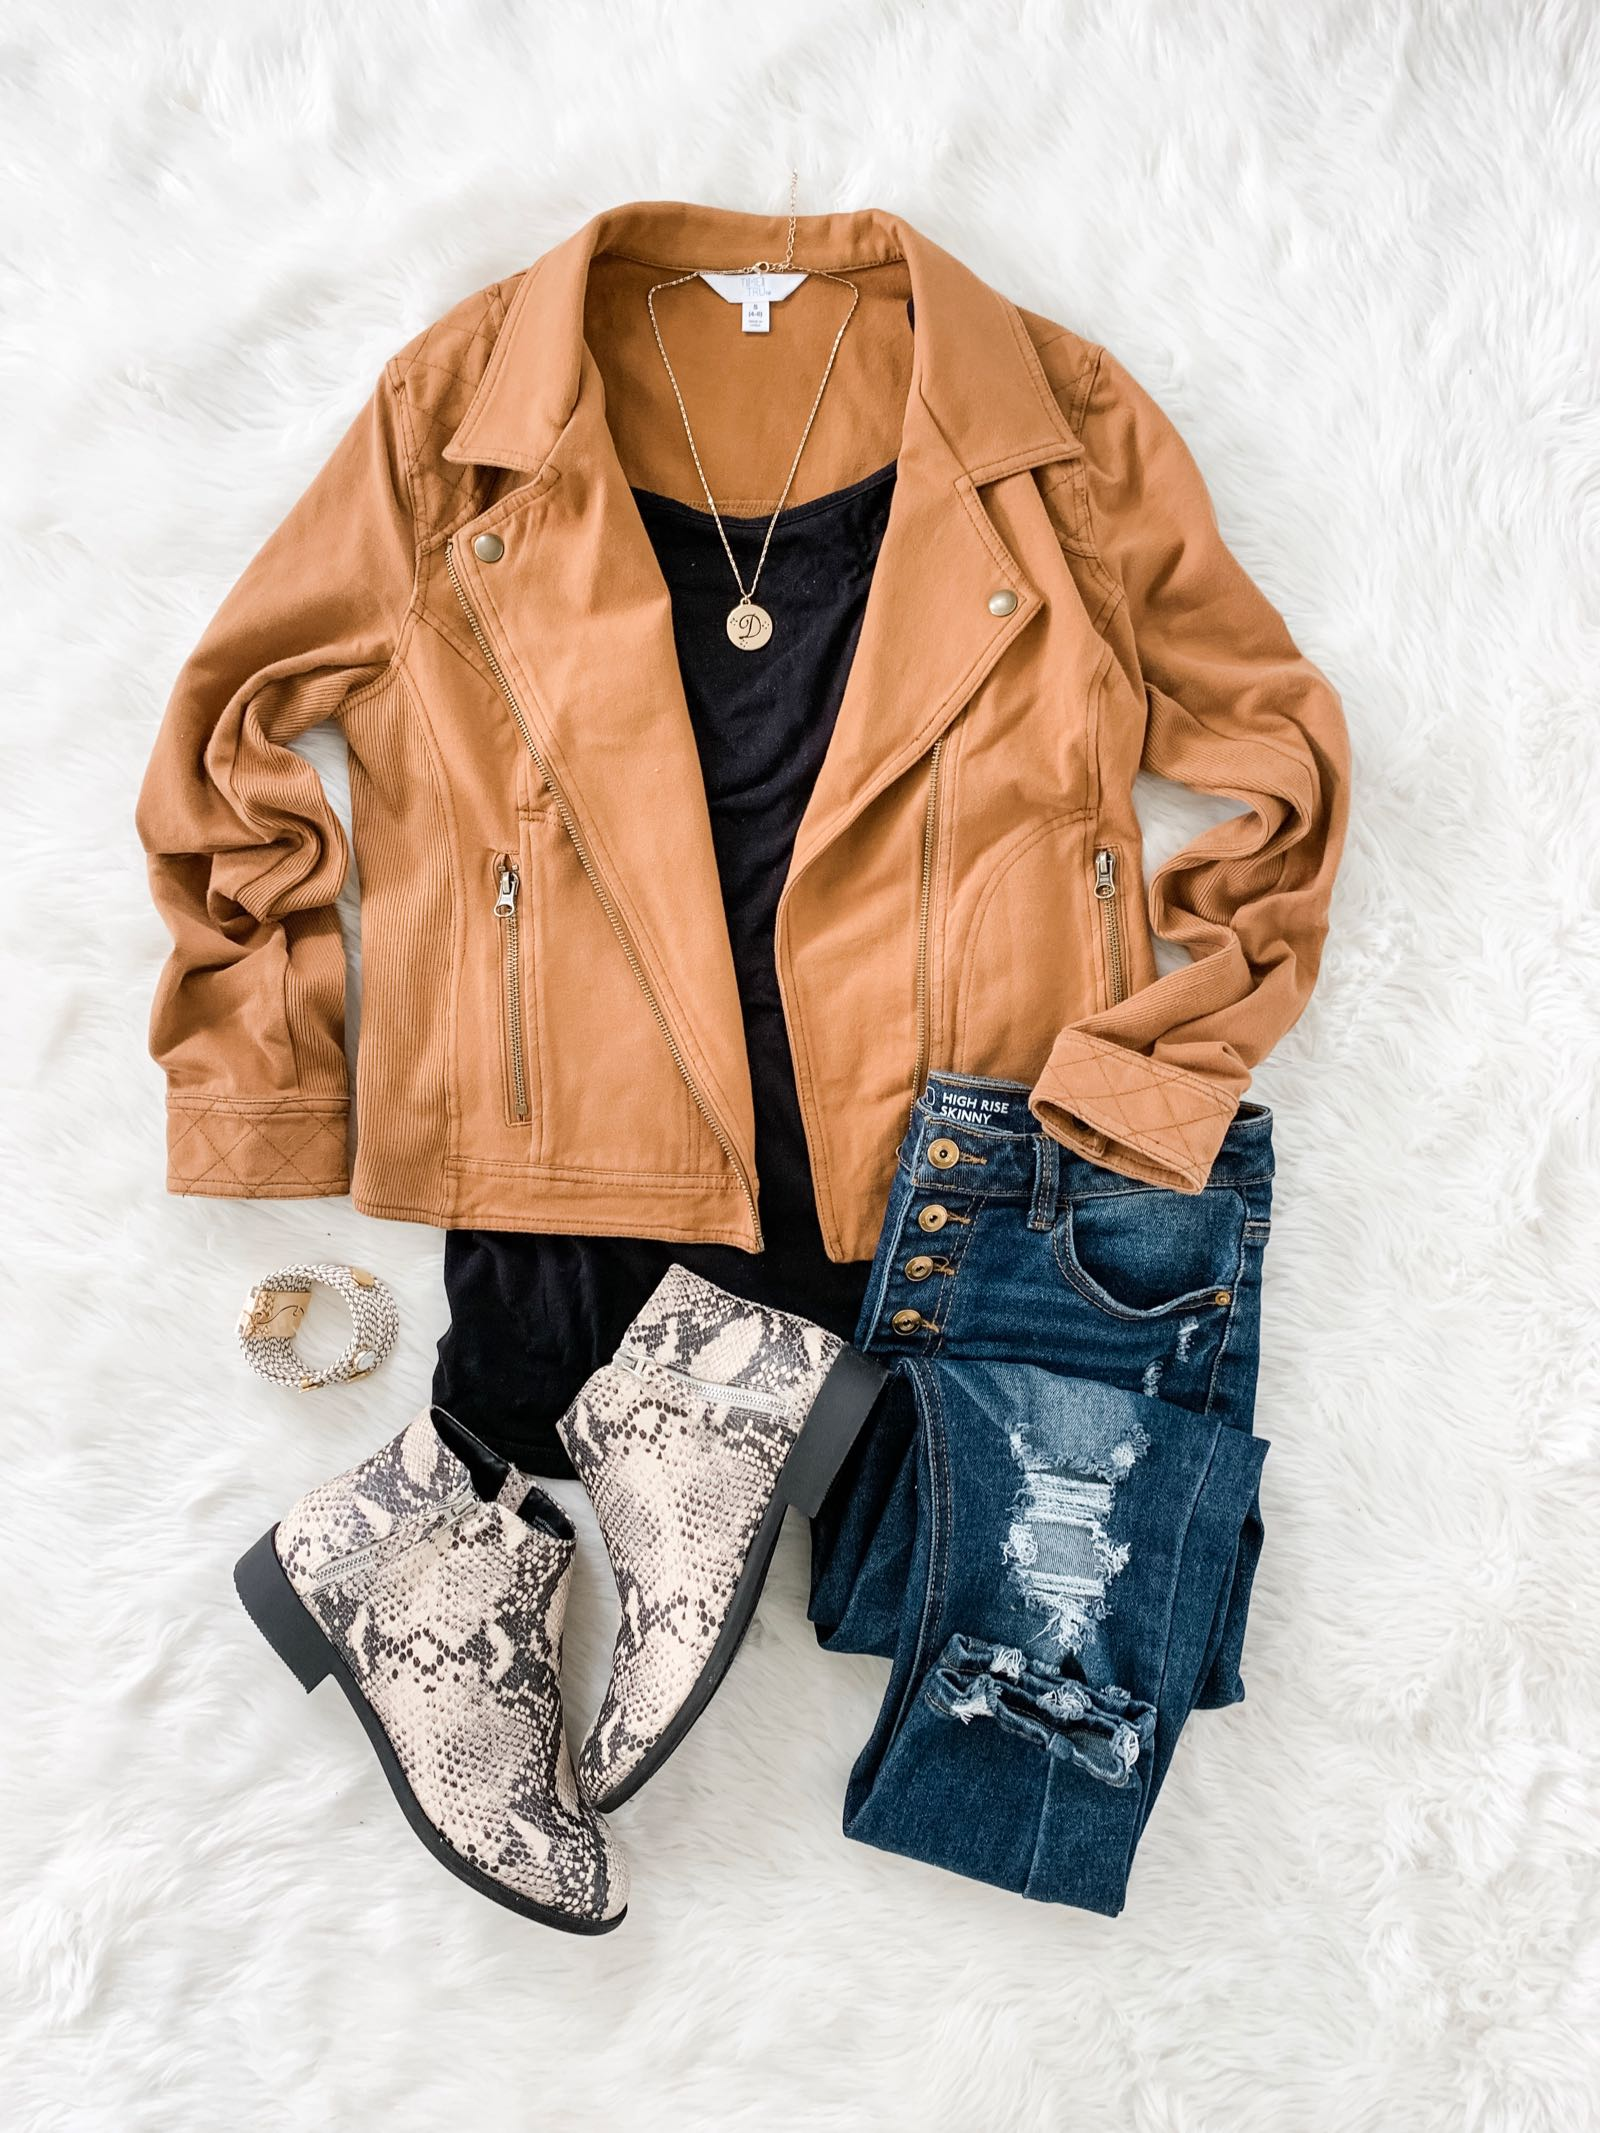 Moto jacket outfit idea for fall featuring camel jacket, black top and snake print booties